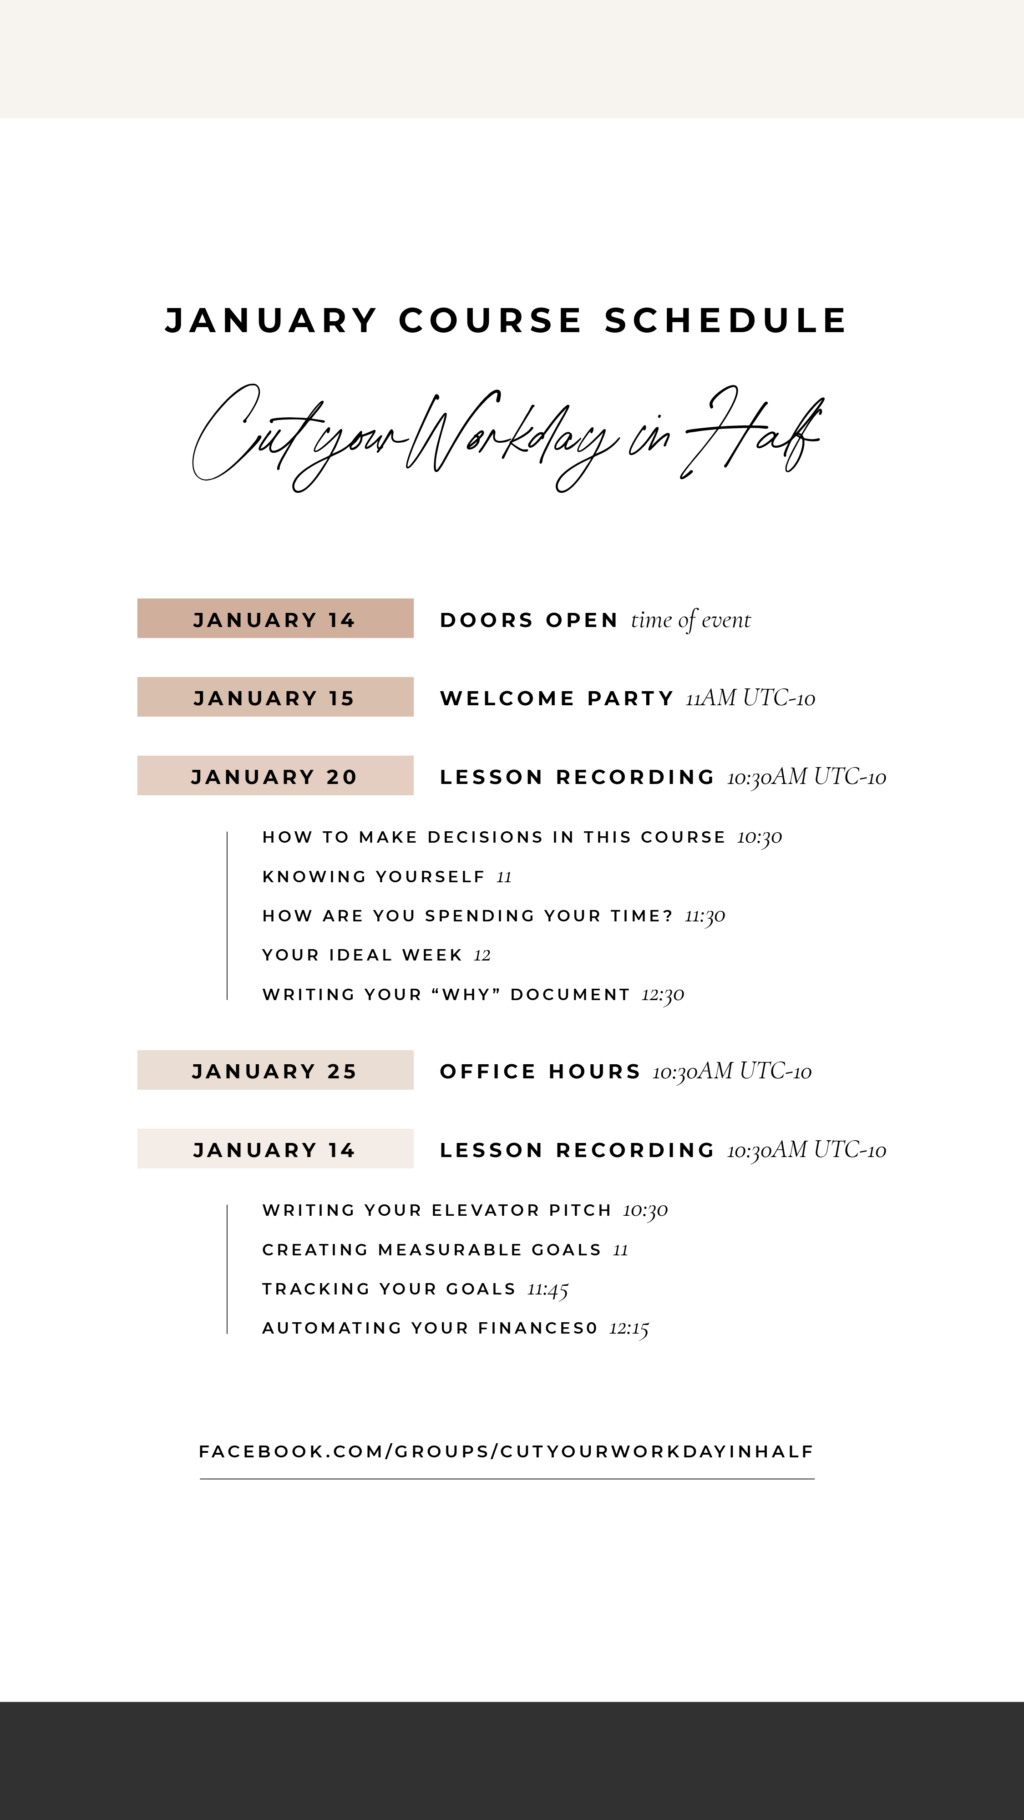 January Course Schedule